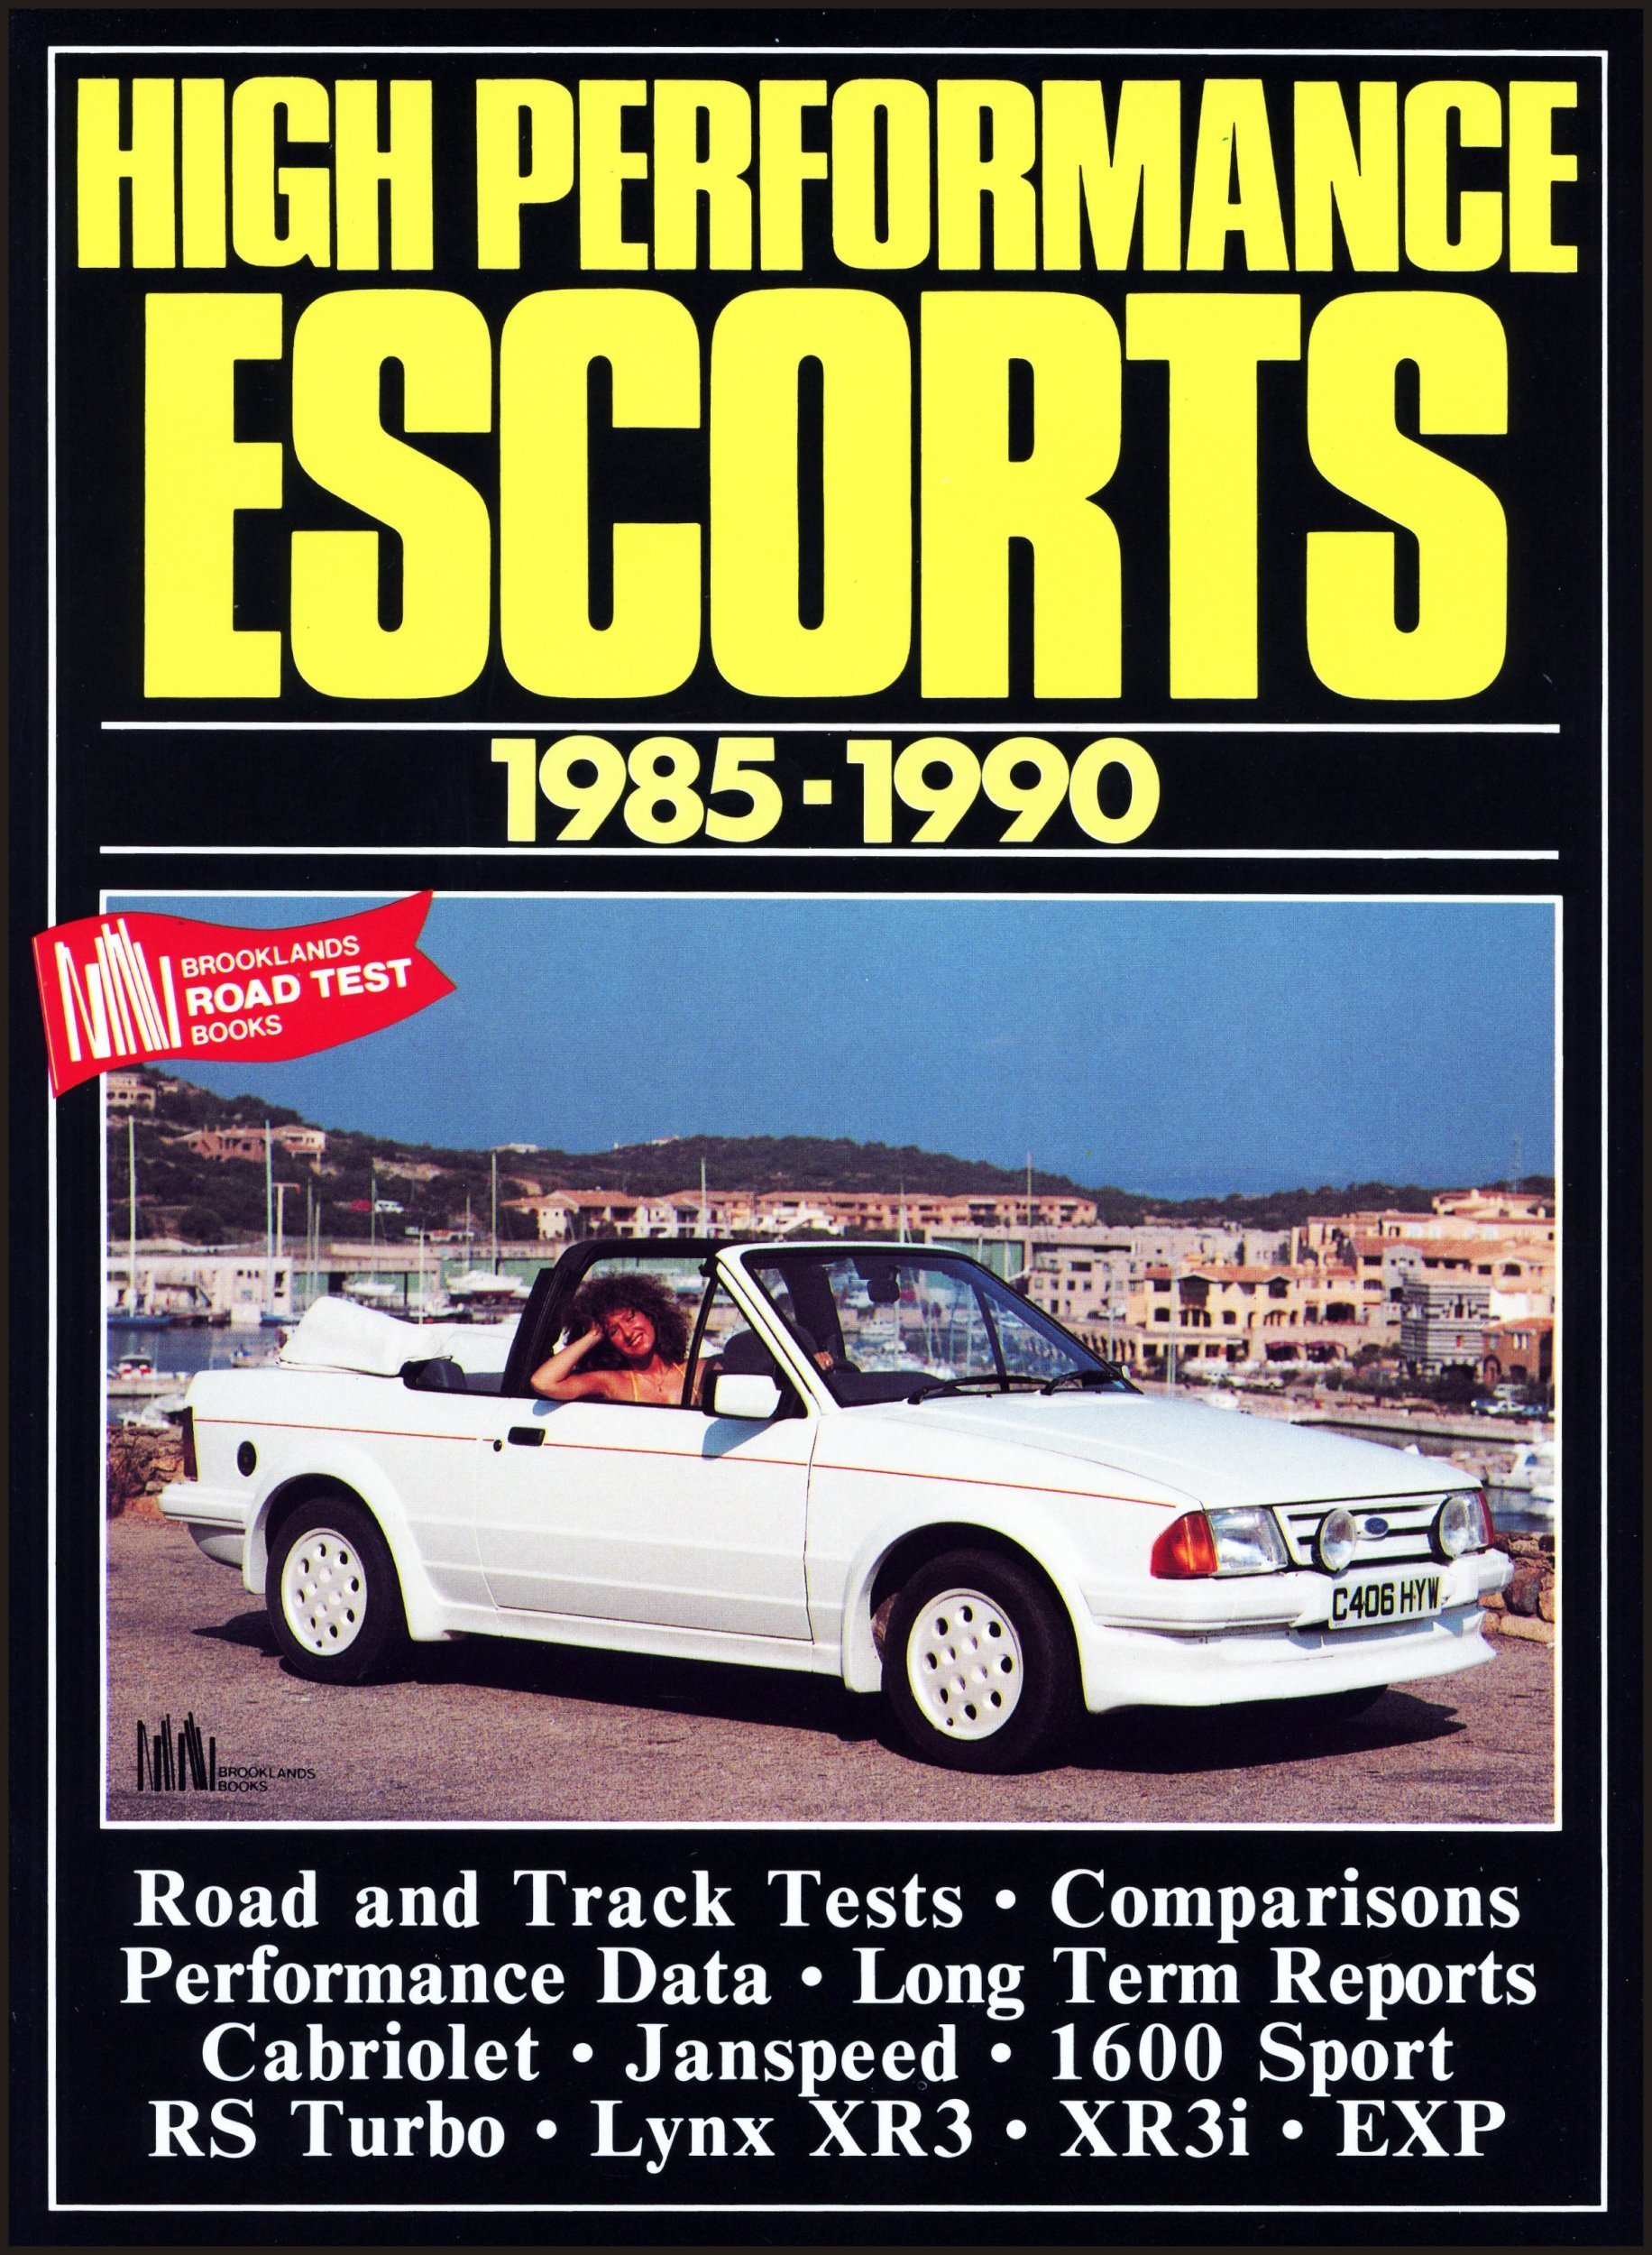 Ford High Performance Escorts, 1980-90 Brooklands Books Road Tests Series: Amazon.es: R. M. Clarke: Libros en idiomas extranjeros